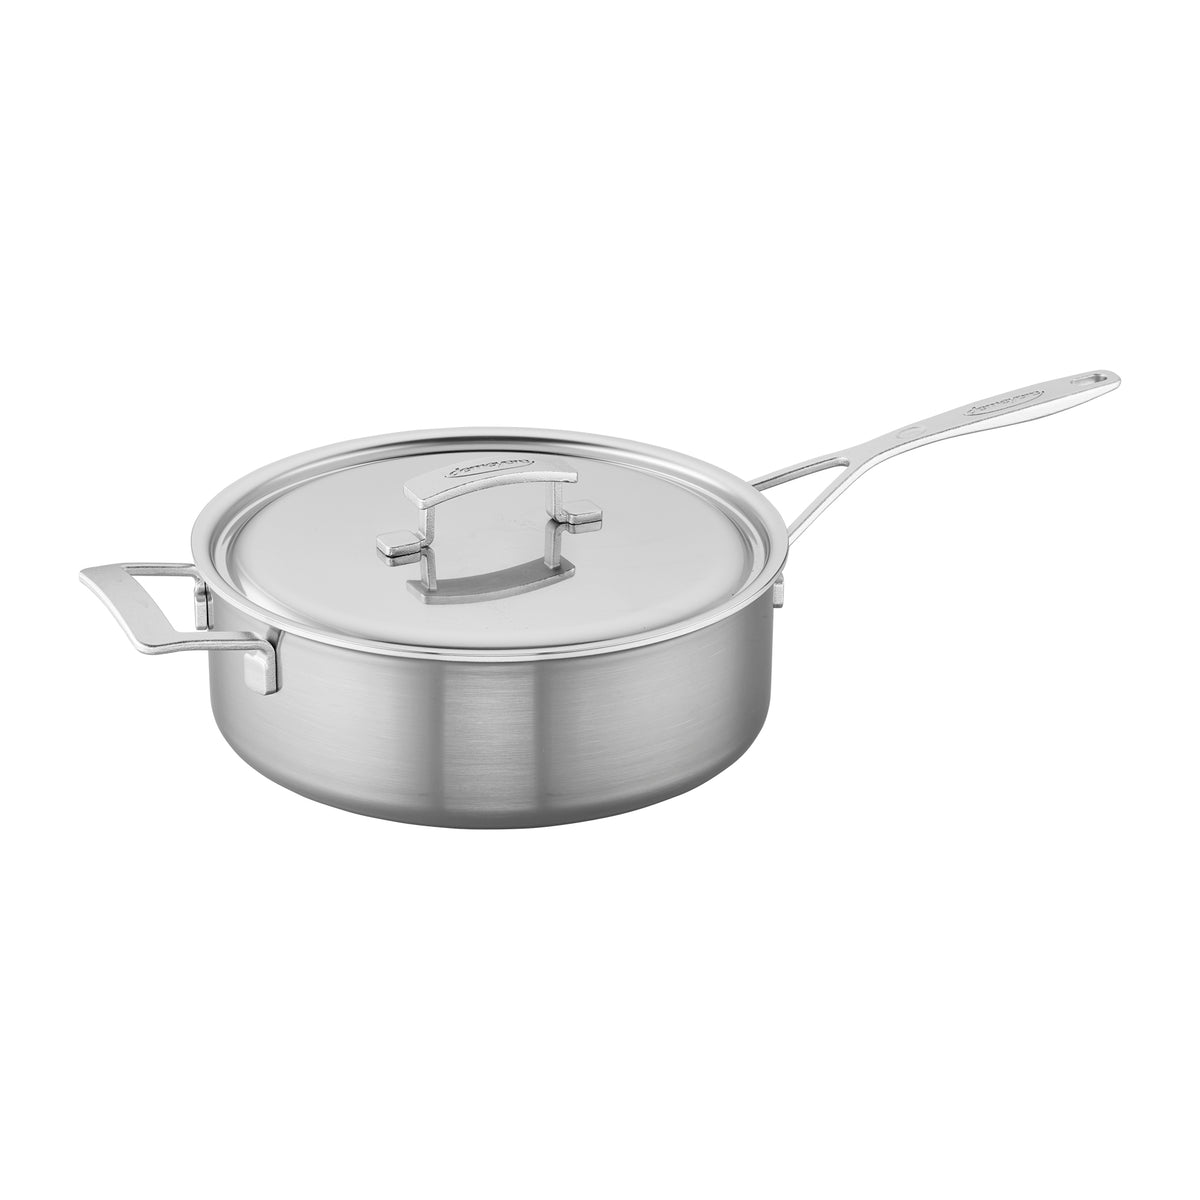 Demeyere Industry 5-Ply 6.5 Qt Stainless Steel Saute Pan